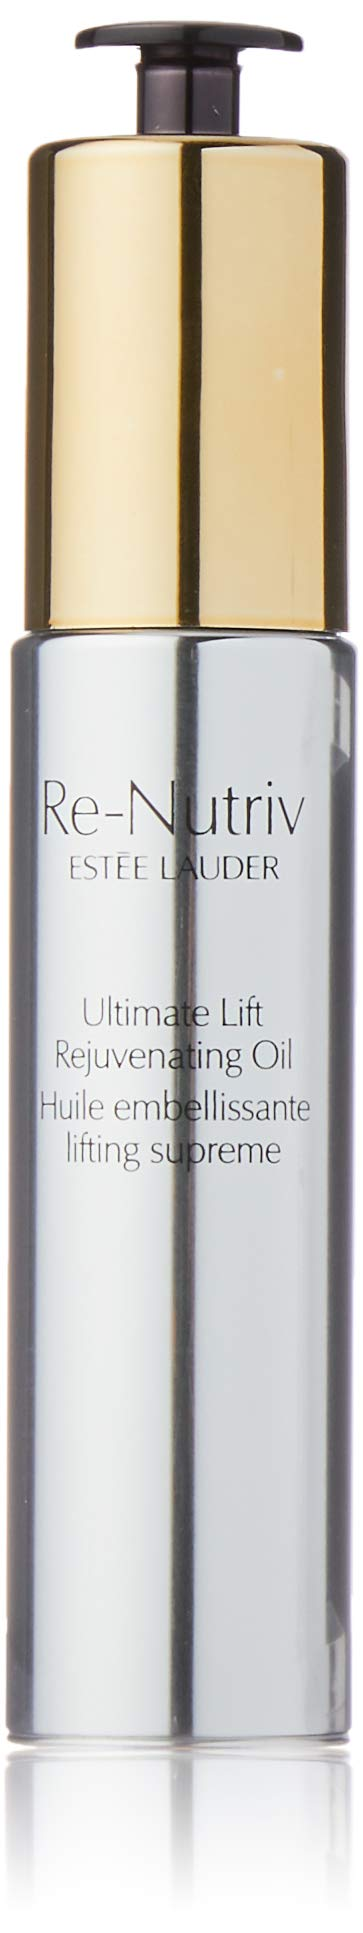 Estee Lauder Women's Re-Nutriv Ultimate Lift Rejuvenating Oil, 1 Ounce